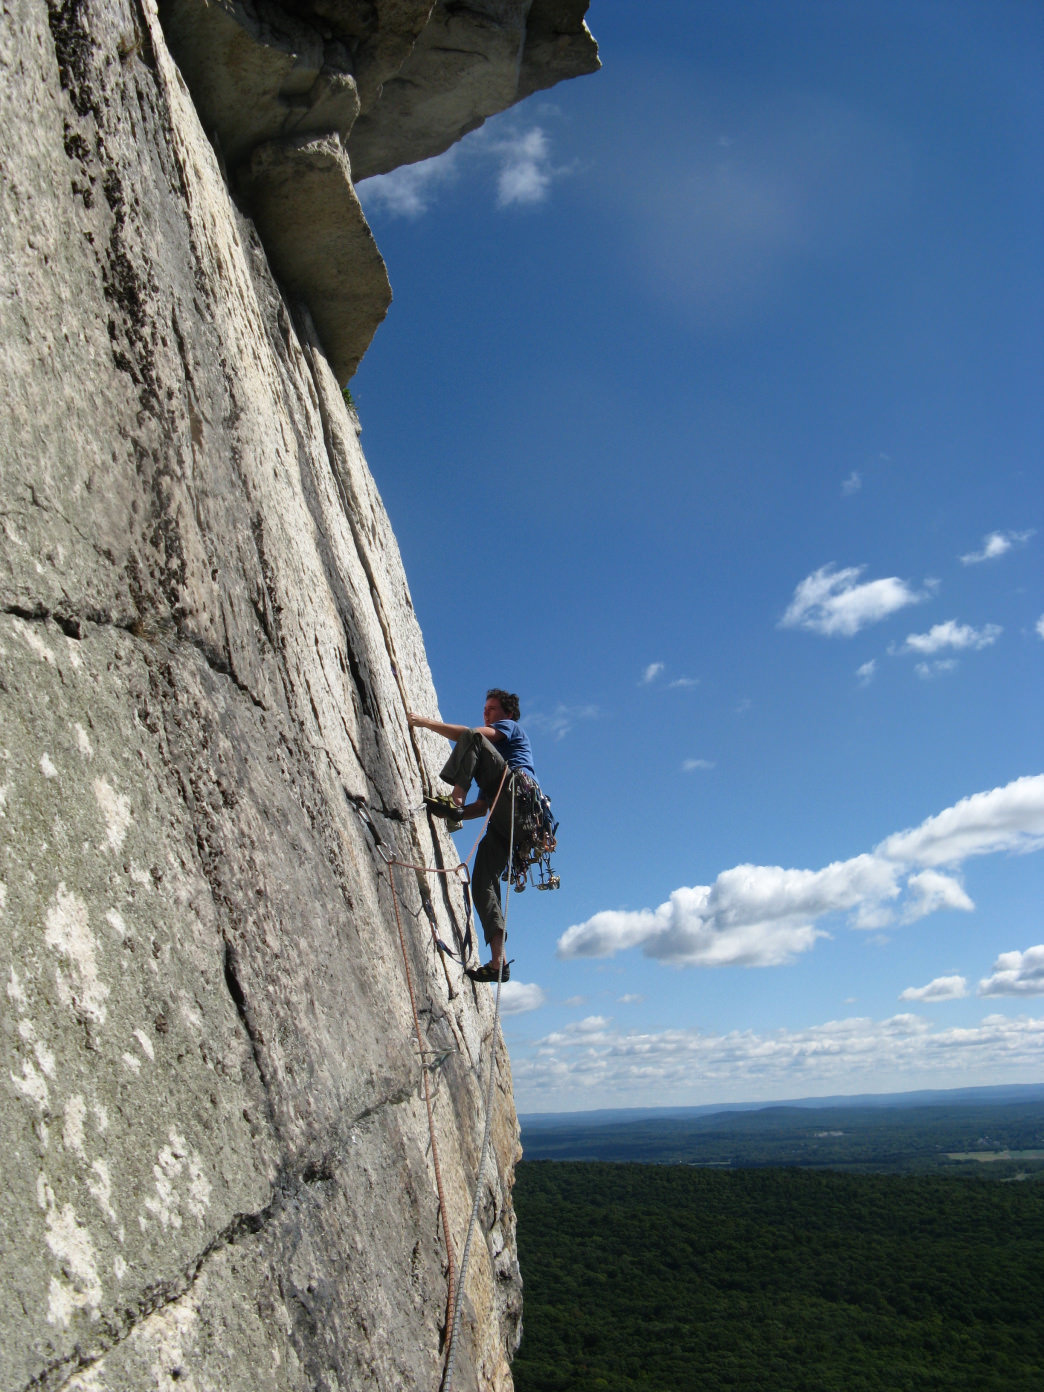 Routes at the Gunks are known for their stout grades, so be prepared for a slice of humble pie.